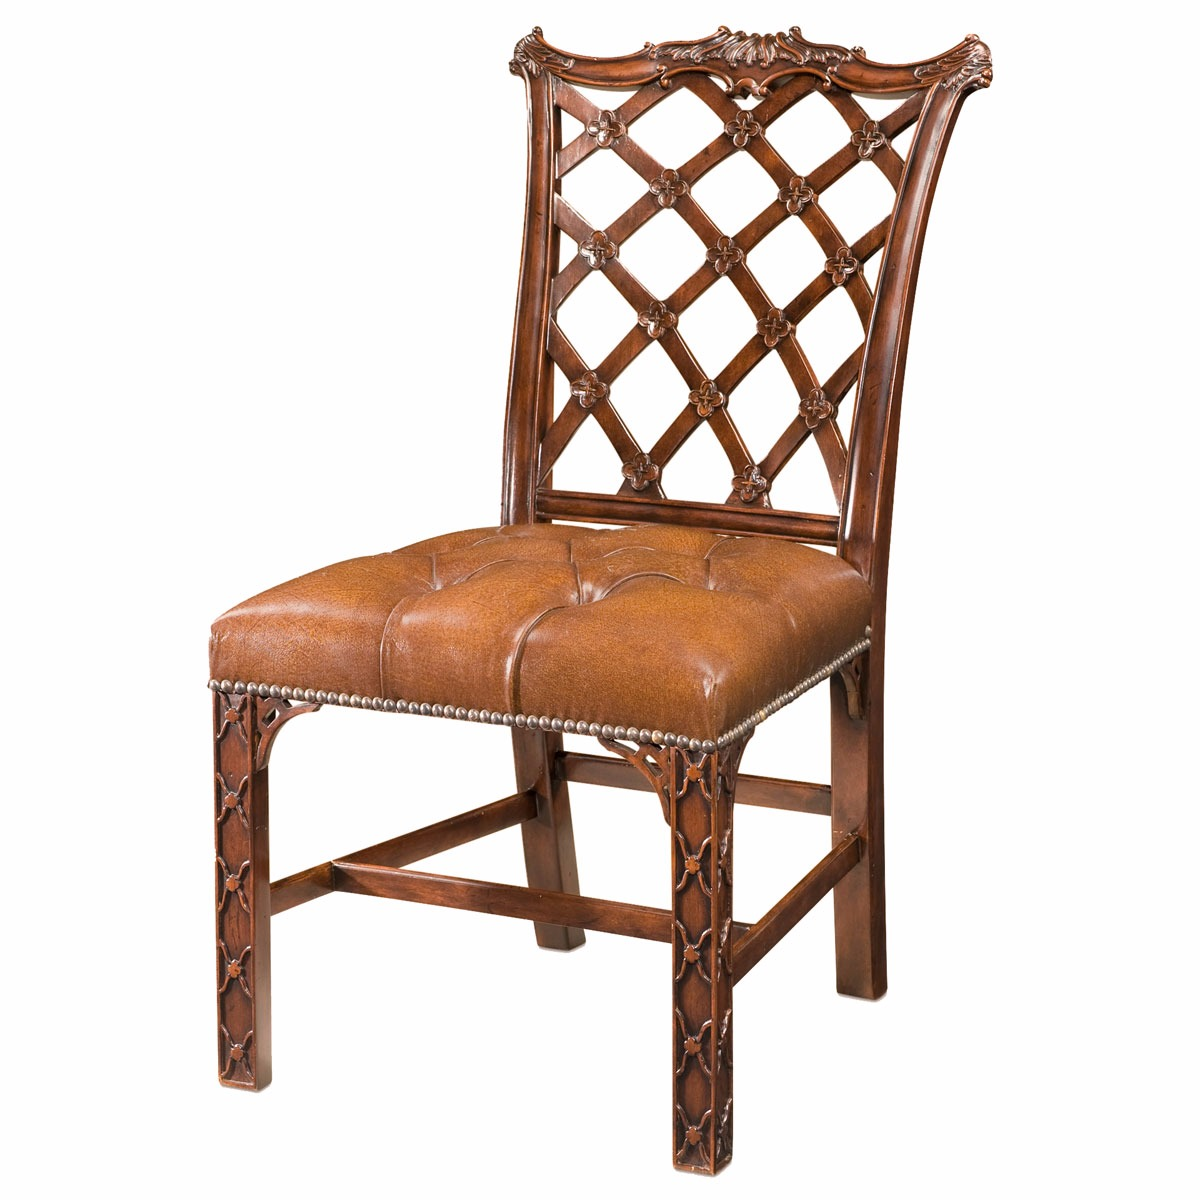 A rustic mahogany dining side chair